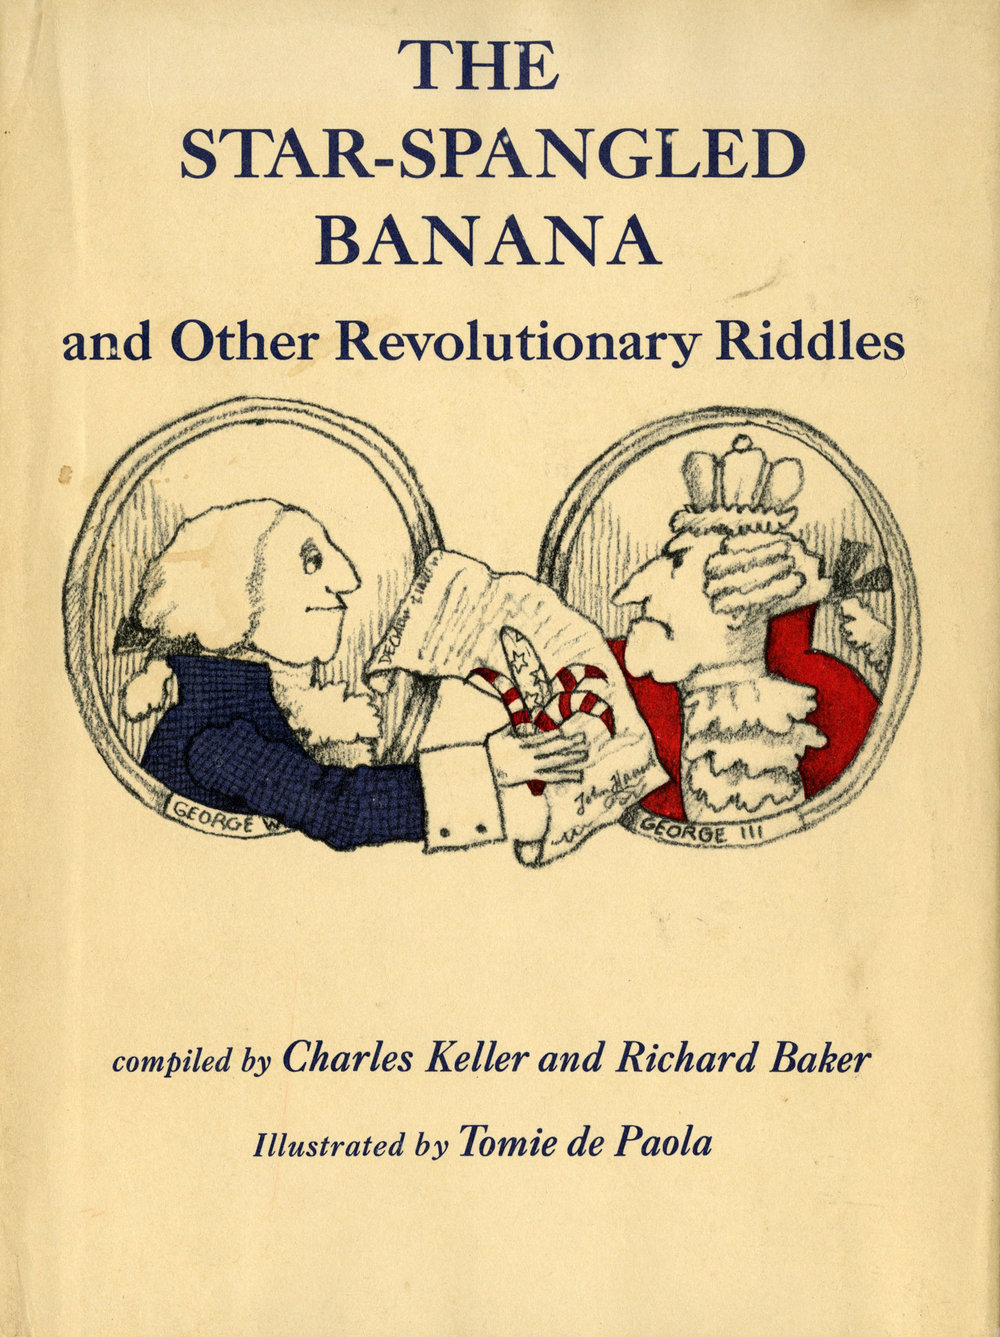 Star-Spangled Banana, The Cover.jpg